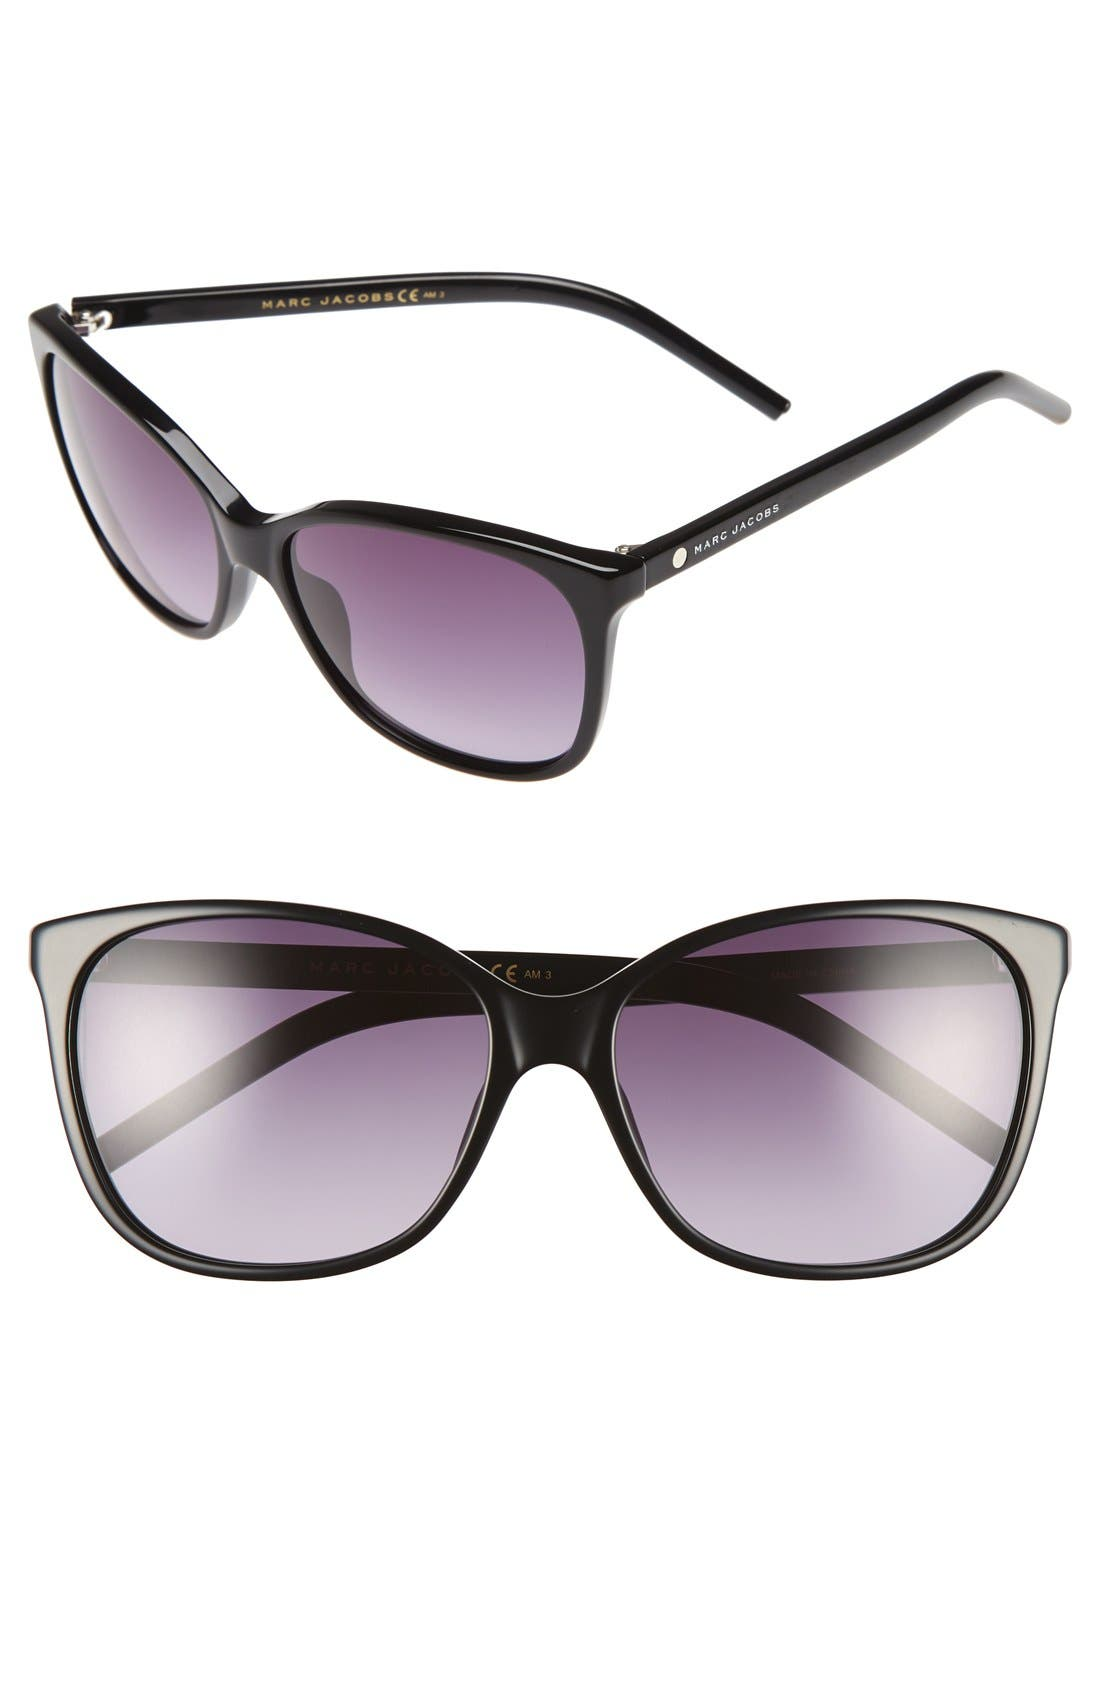 57mm Oversized Sunglasses,                         Main,                         color, Black